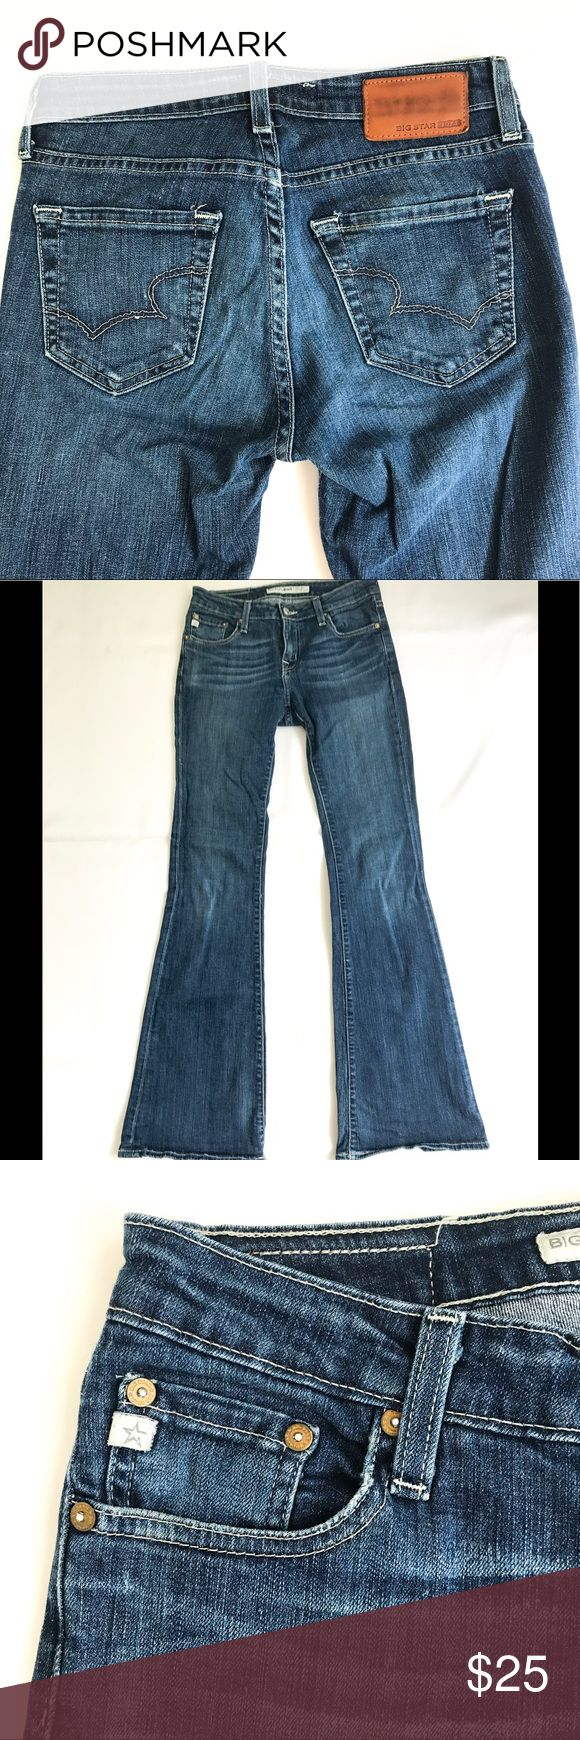 Big Star jeans Big Star bootcut jeans. Size 27L. Slightly frayed on the back heels as seen in pics. Big Star Jeans Boot Cut